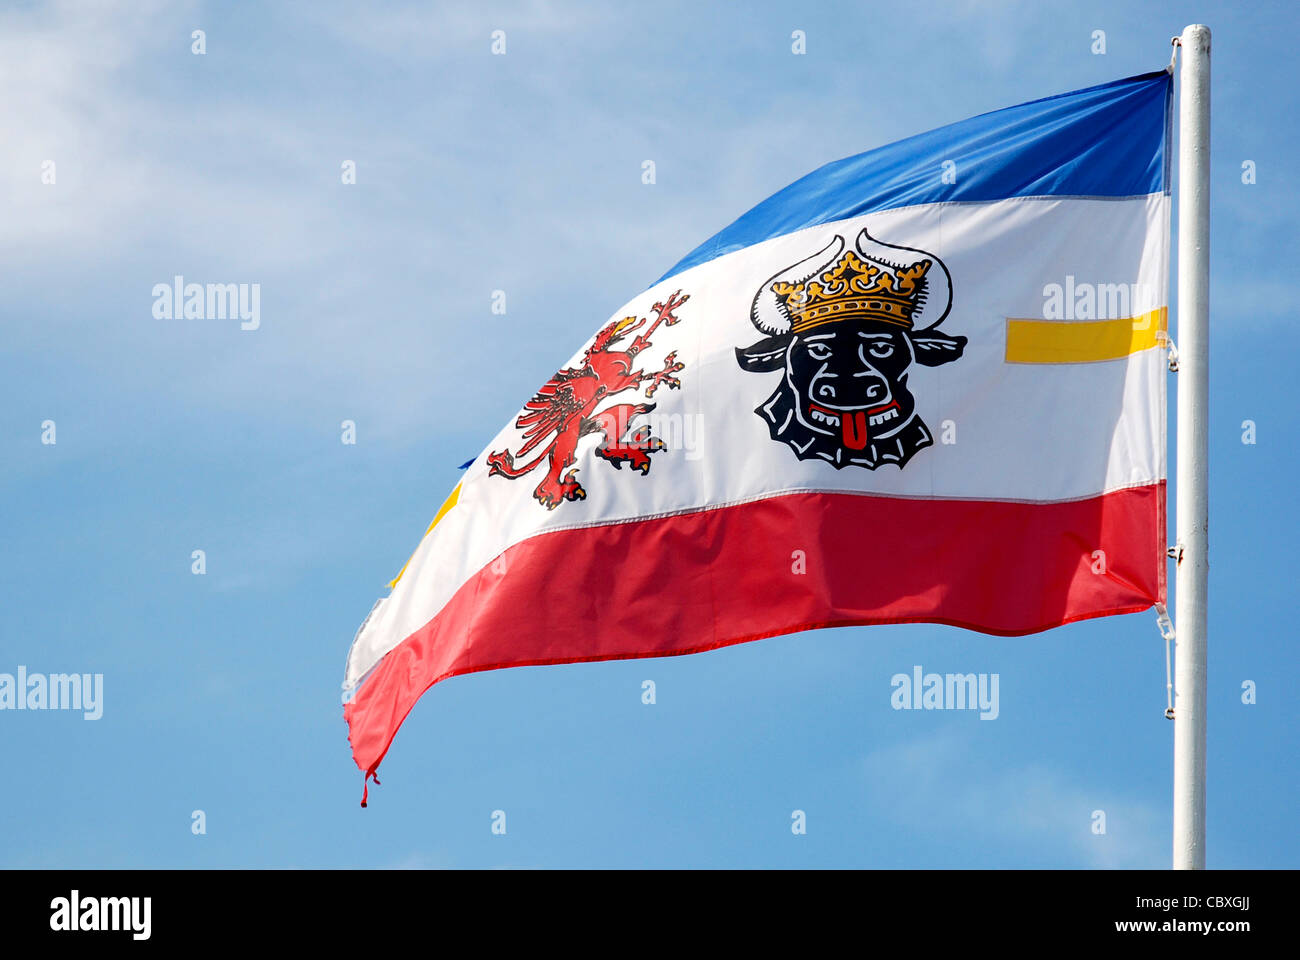 Fly flags with the coat of arms of the Federal state from Mecklenburg-Western Pomerania. - Stock Image